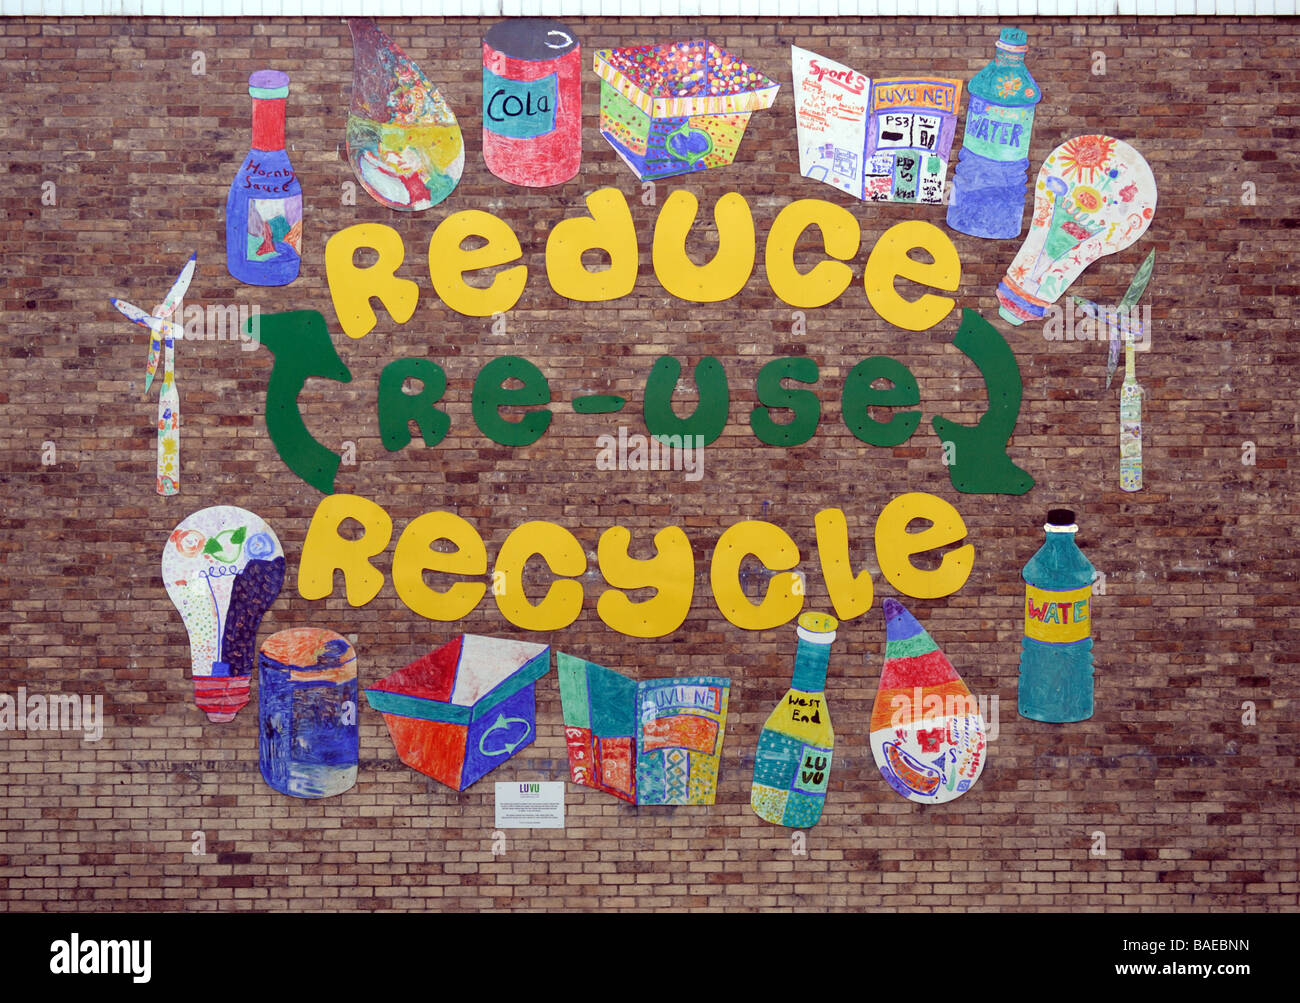 reduce-re-use-recycle-mural-collage-the-spine-lancaster-university-BAEBNN.jpg